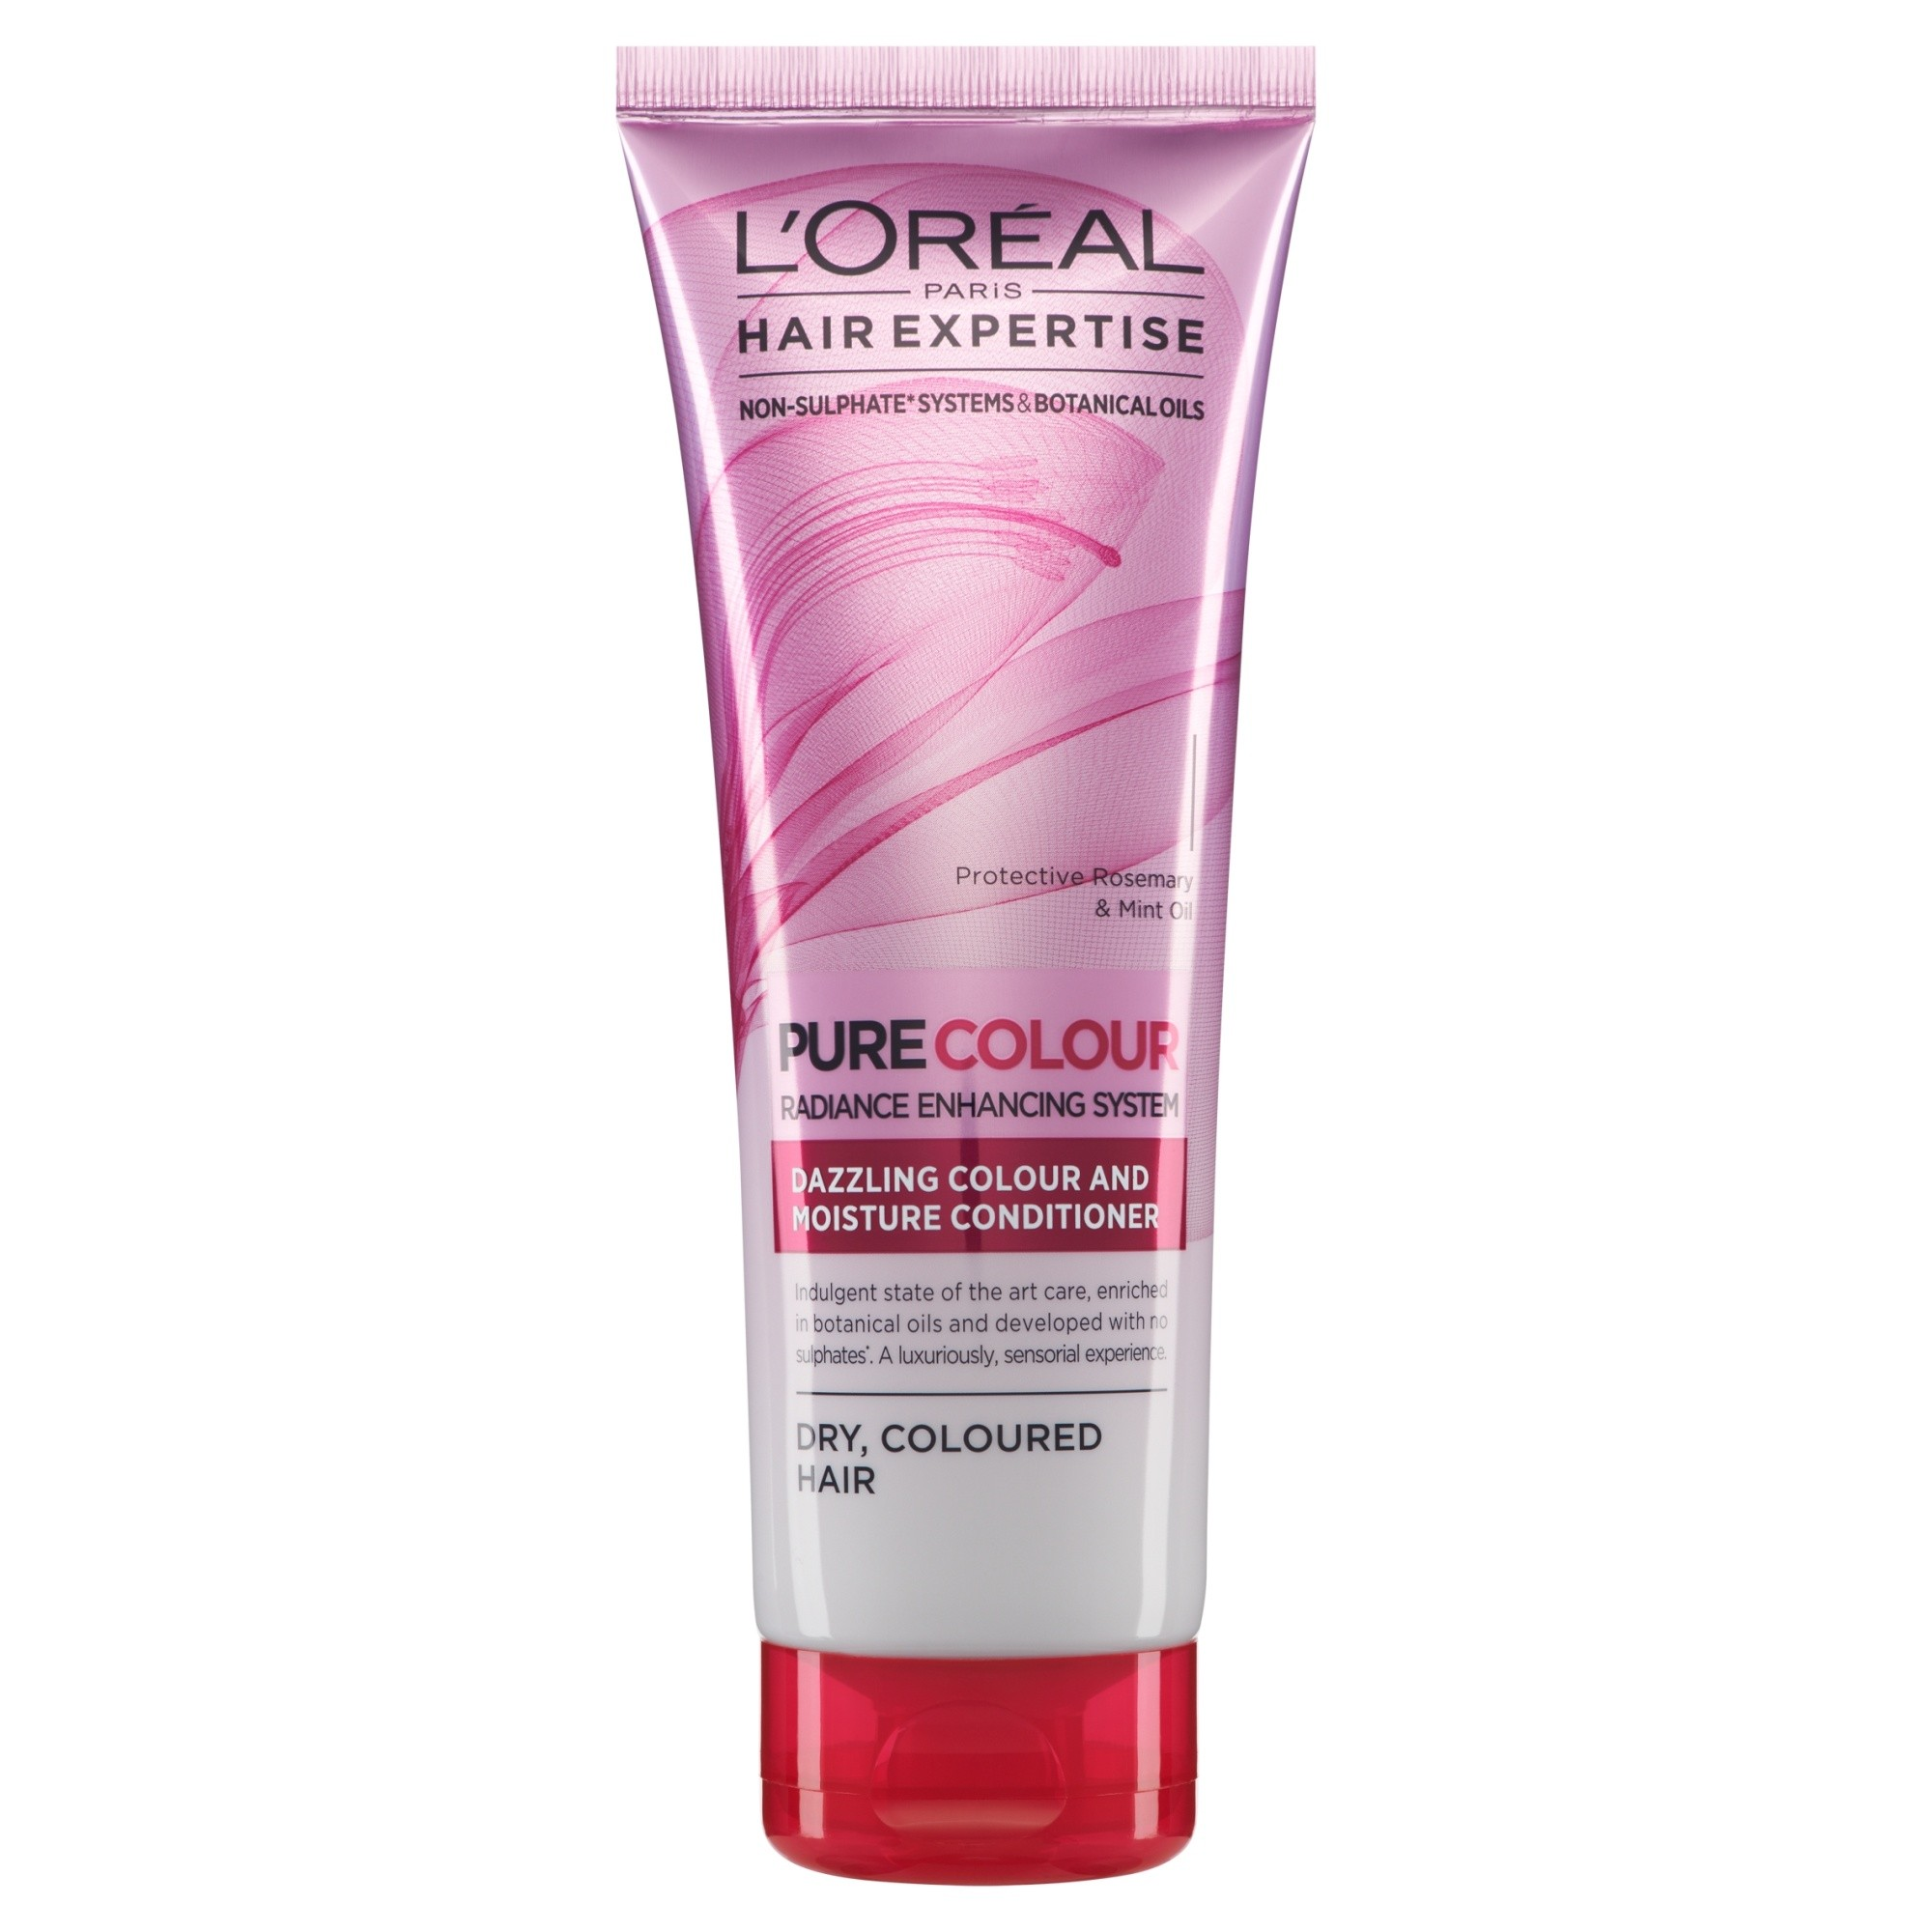 L'Oreal Paris Hair Expertise Pure Colour and Moisture Conditioner